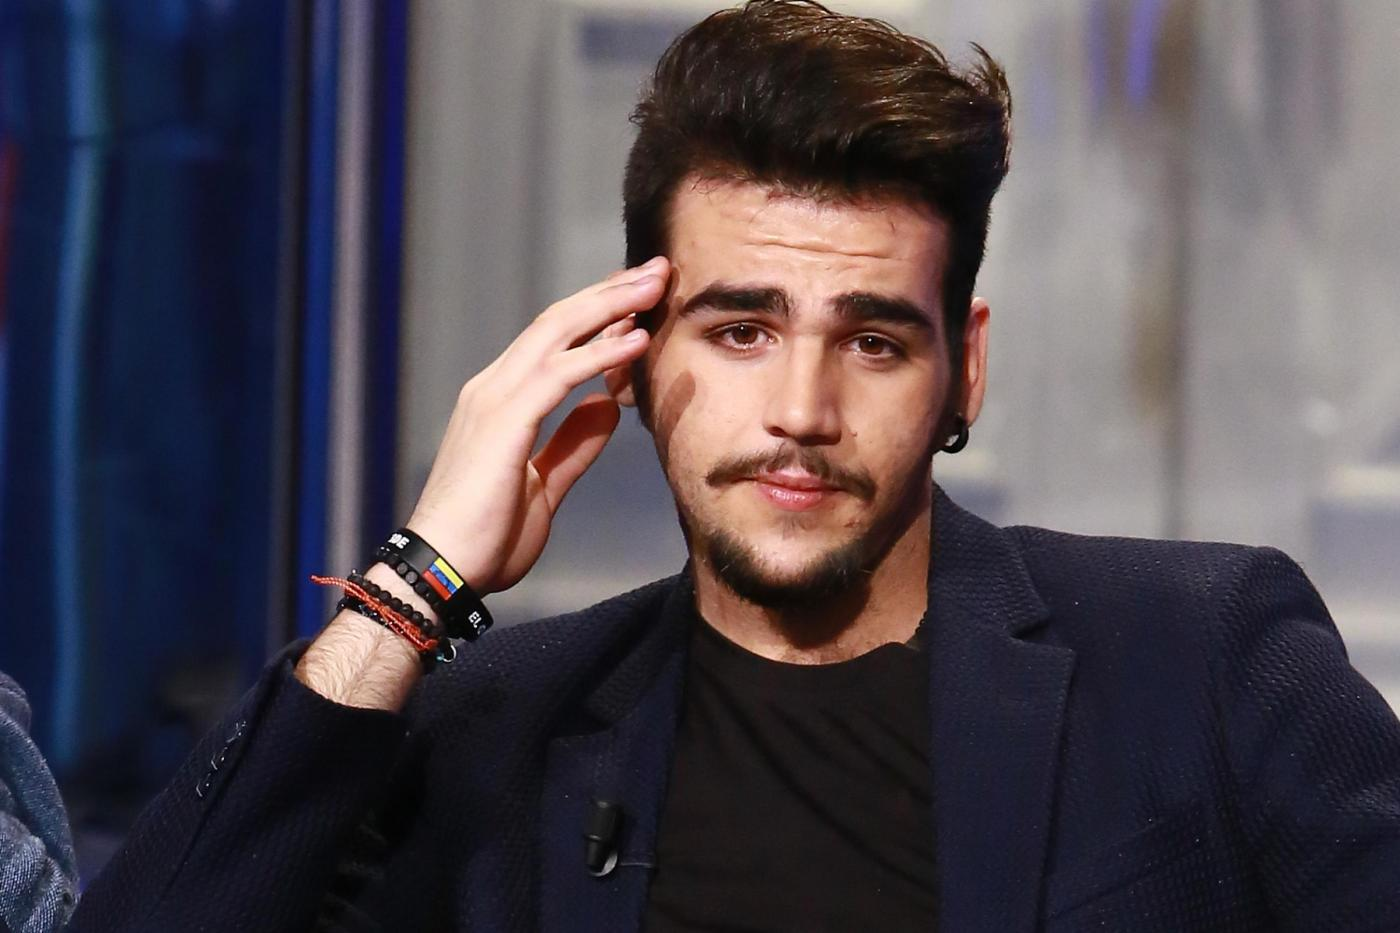 Tips: Ignazio Boschetto, 2017s chic hair style of the cool fun  musician